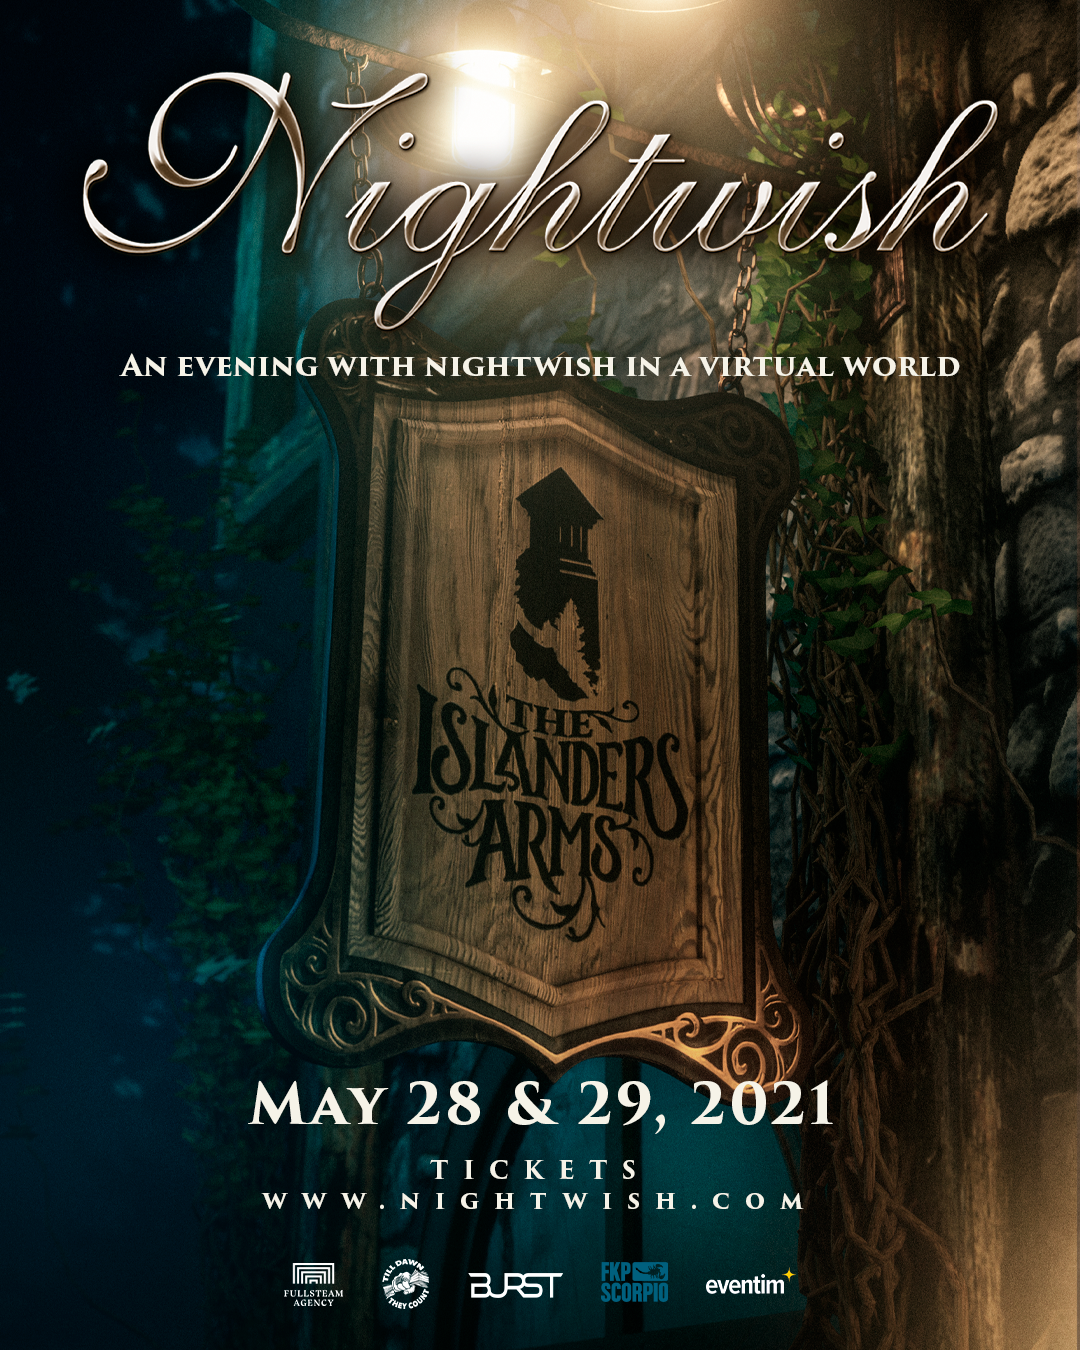 An Evening with Nightwish in a Virtual World